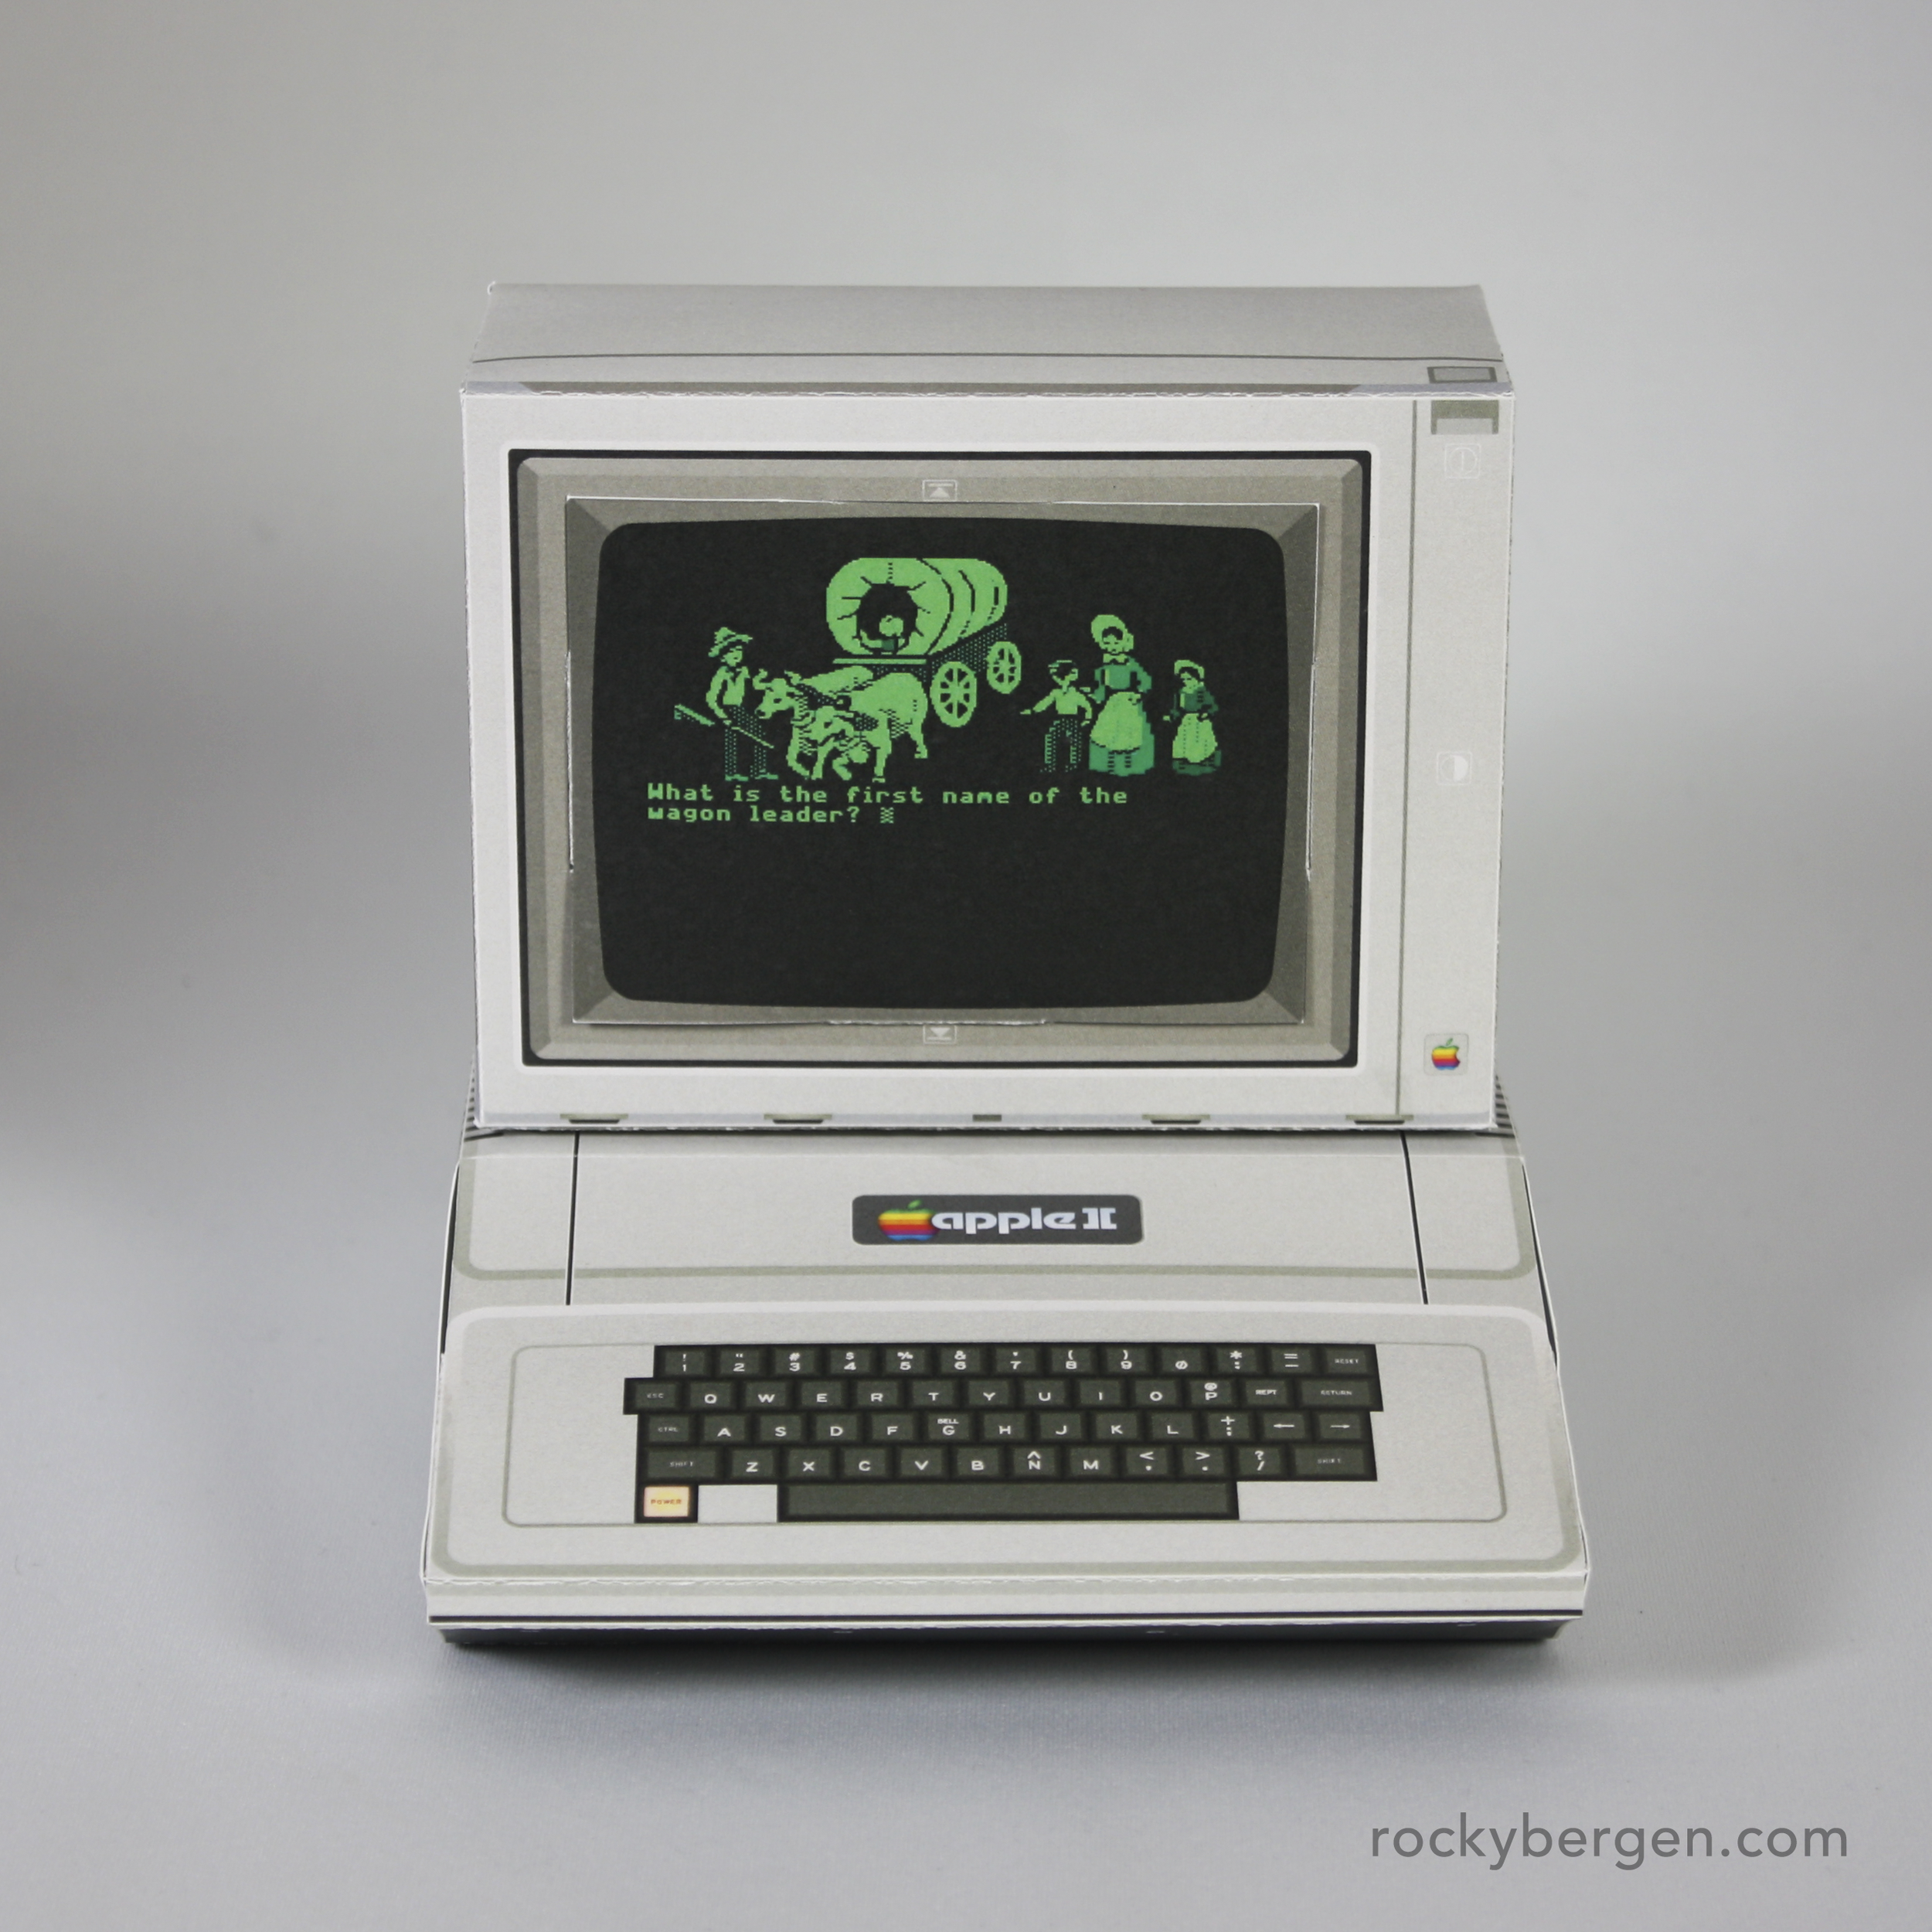 Oregon Trail was my first exposure to the Apple II on our classroom computer back in the 80s.